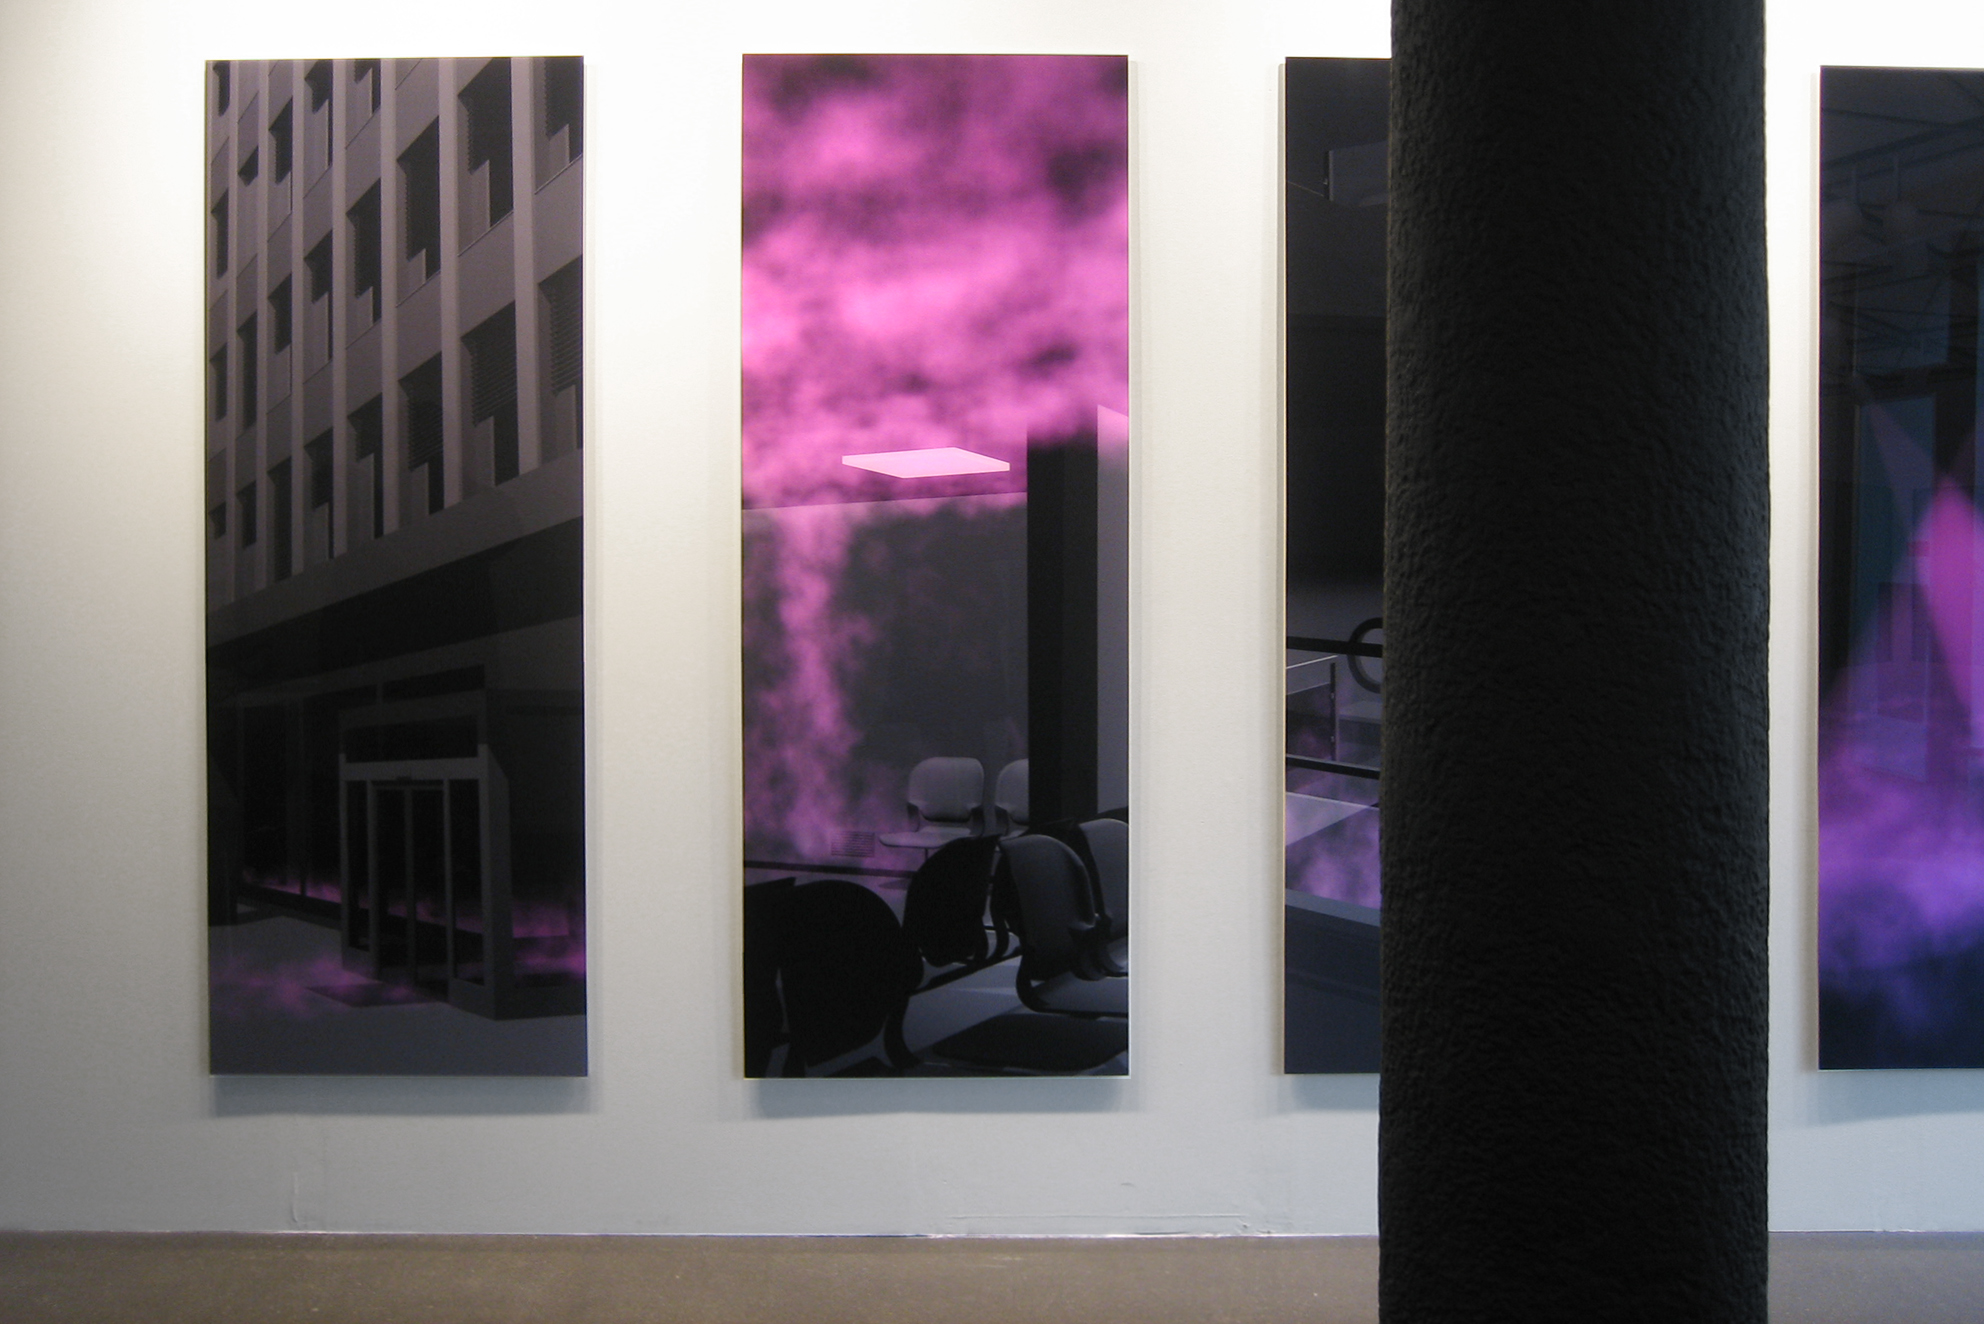 No comment, series of 5 photographs, lambda print / 2 Plexiglas slab 200 x 75 x 1 cm, 2006, in collaboration with Swann Thommen